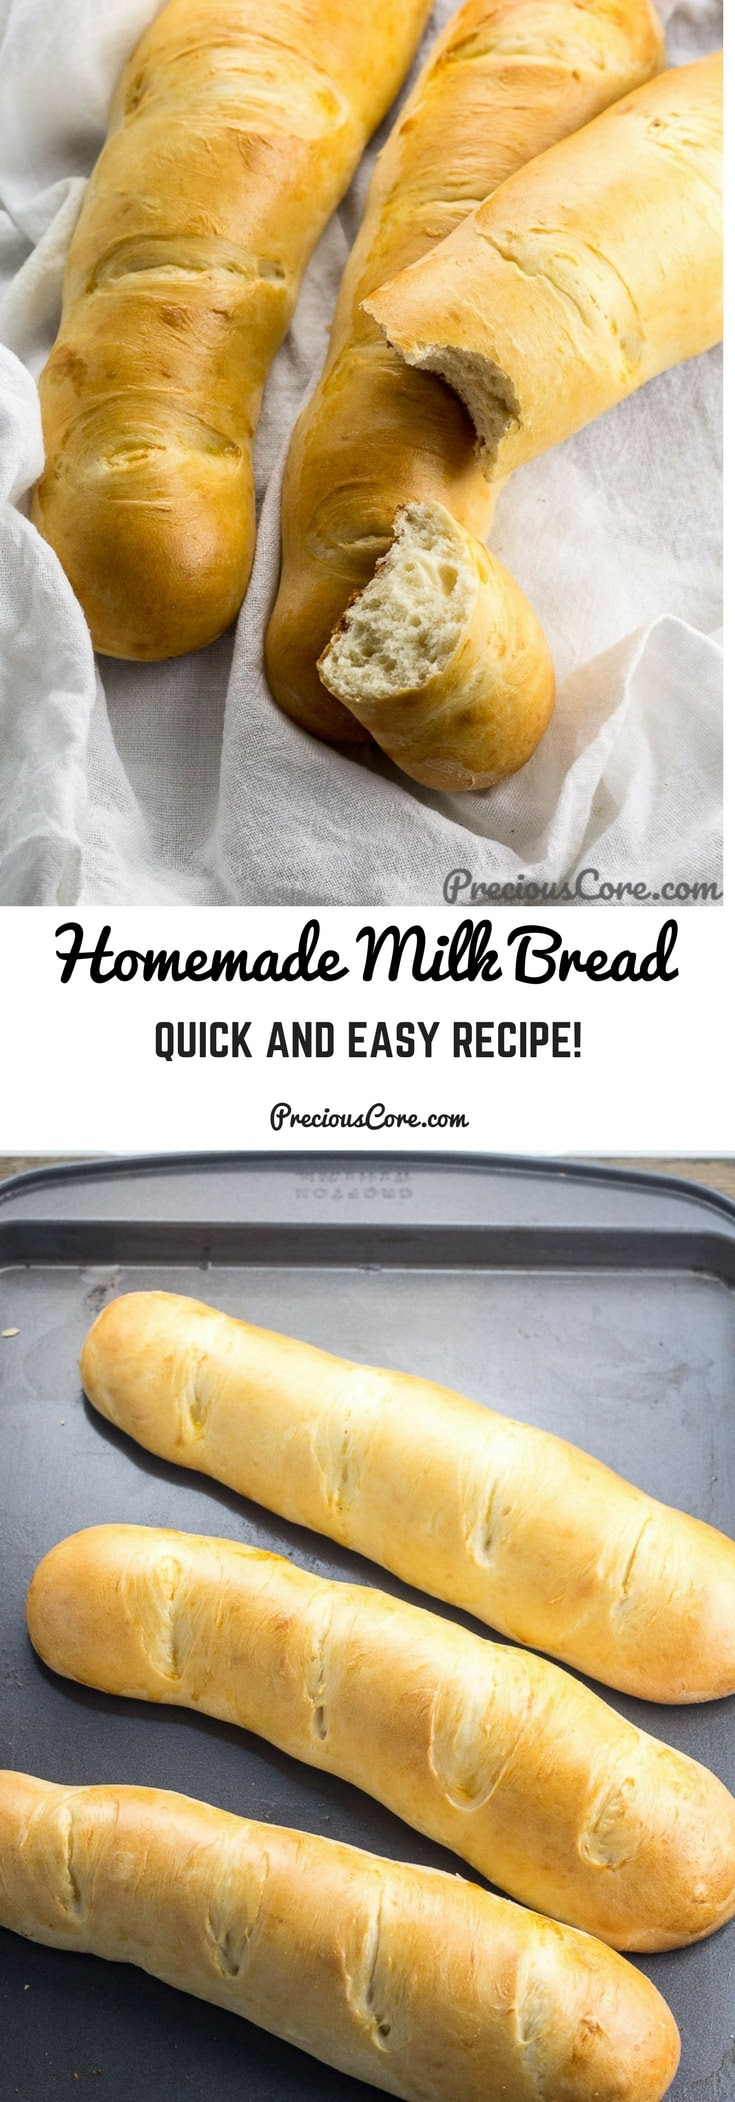 Homemade Milk Bread | Precious Core